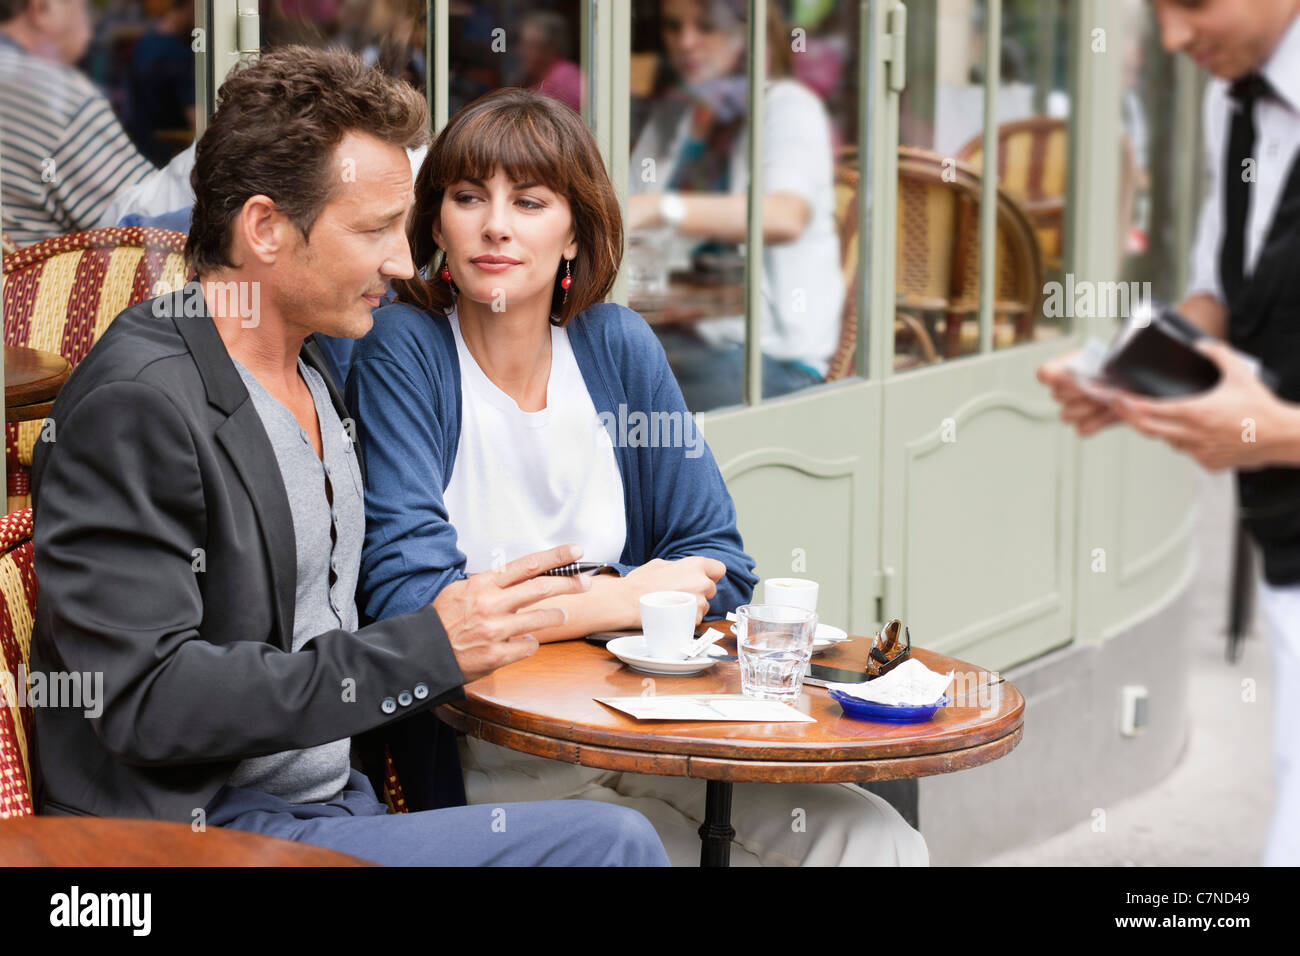 Waiter France Stock Photos & Waiter France Stock Images - Alamy